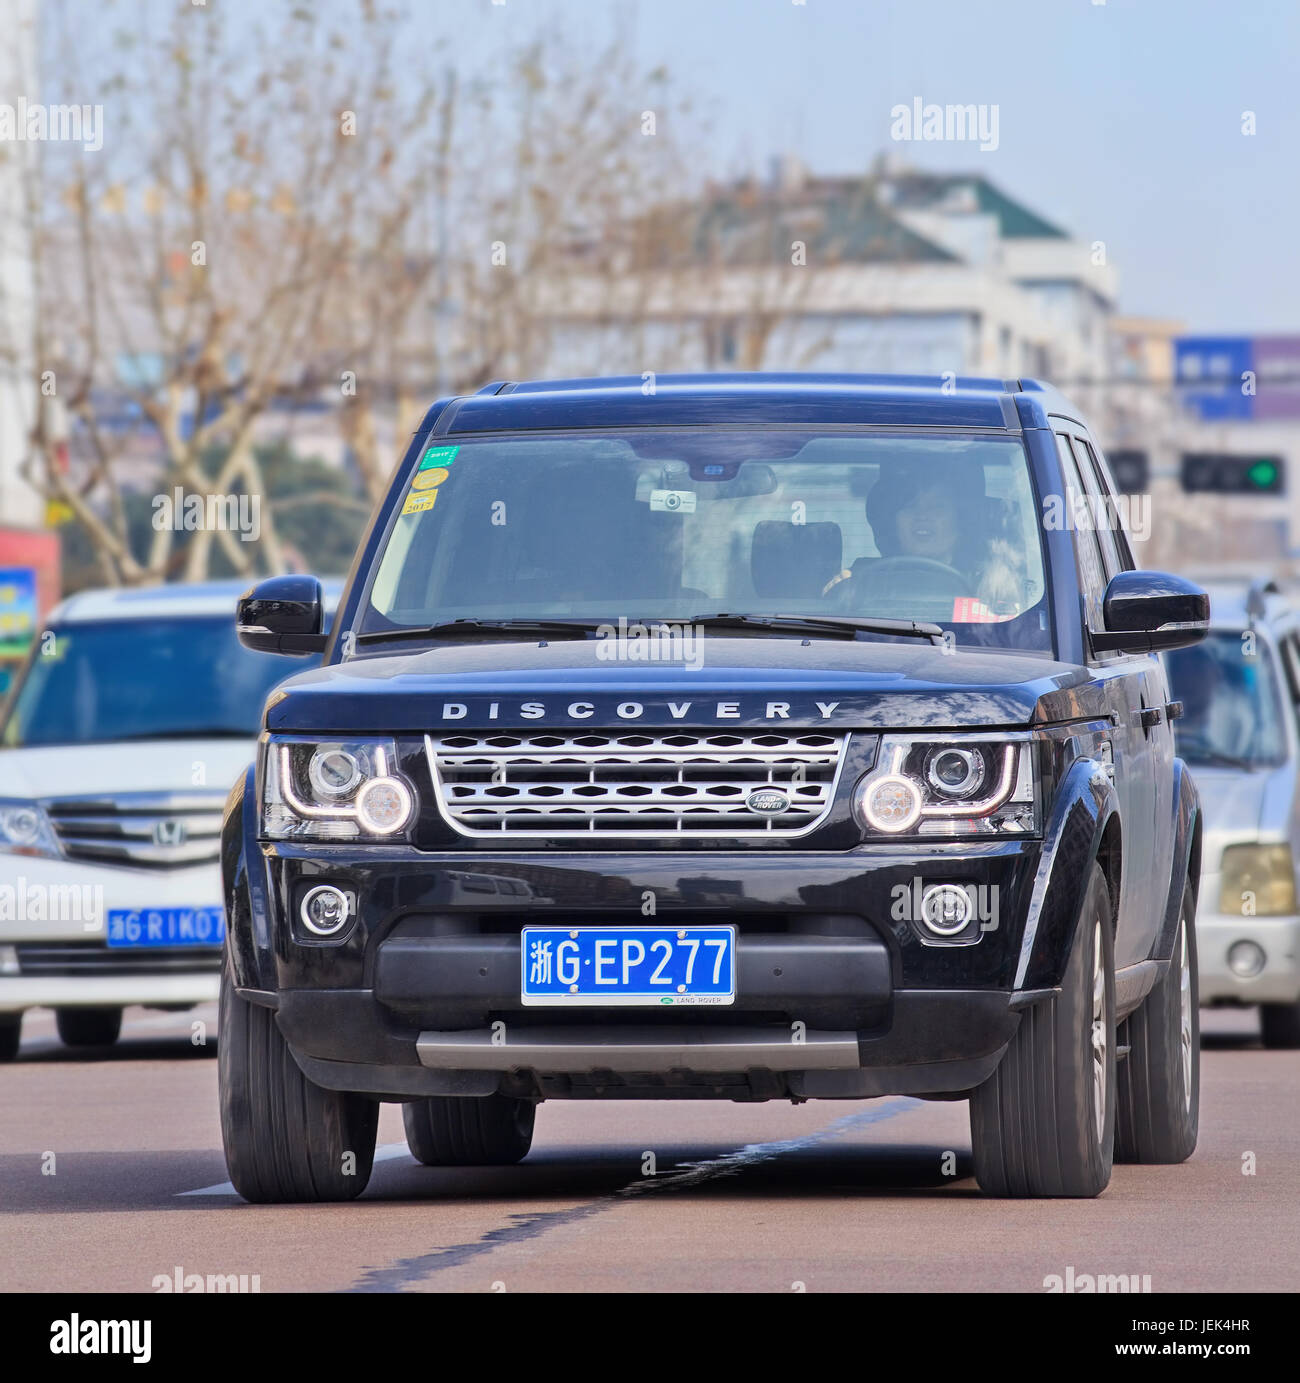 2008 Land Rover Range Rover Hse Stock M008 For Sale Near: Discovery Land Rover Stock Photos & Discovery Land Rover